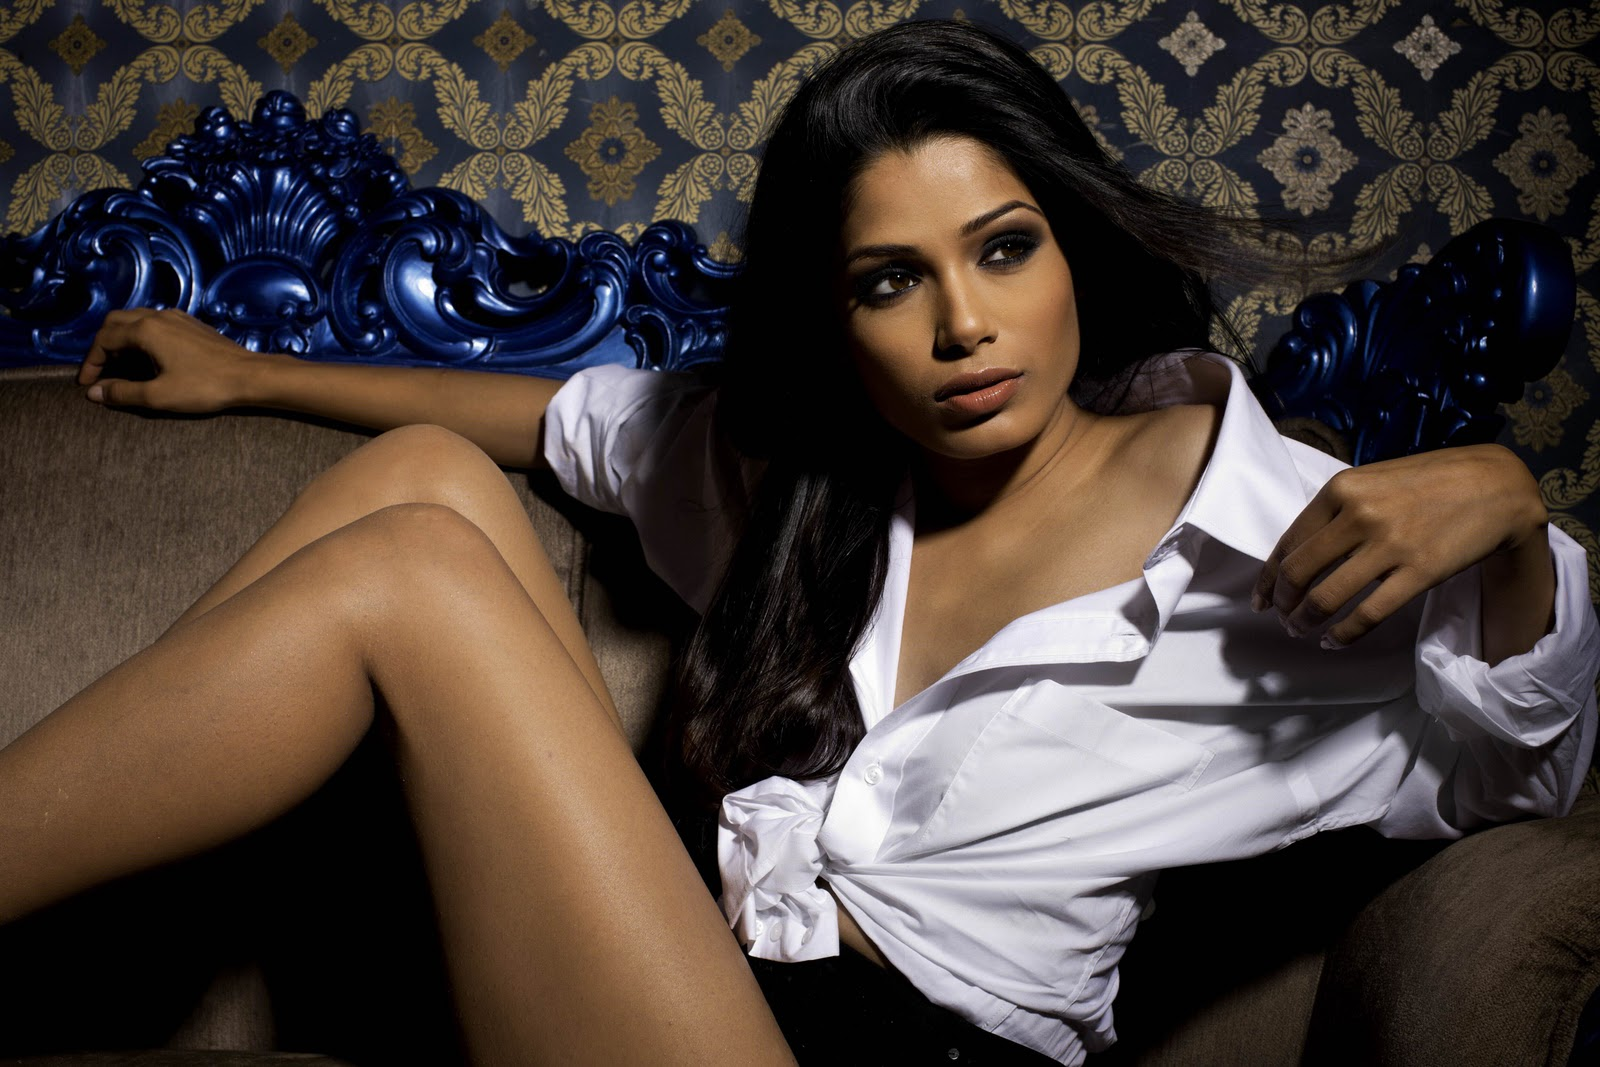 http://1.bp.blogspot.com/_0Uux8lqv9hg/TLiwQzcDXUI/AAAAAAAAA-Q/9rHYn0mACHs/s1600/Freida-Pinto-Hot-Photo-Shoot-4.jpg